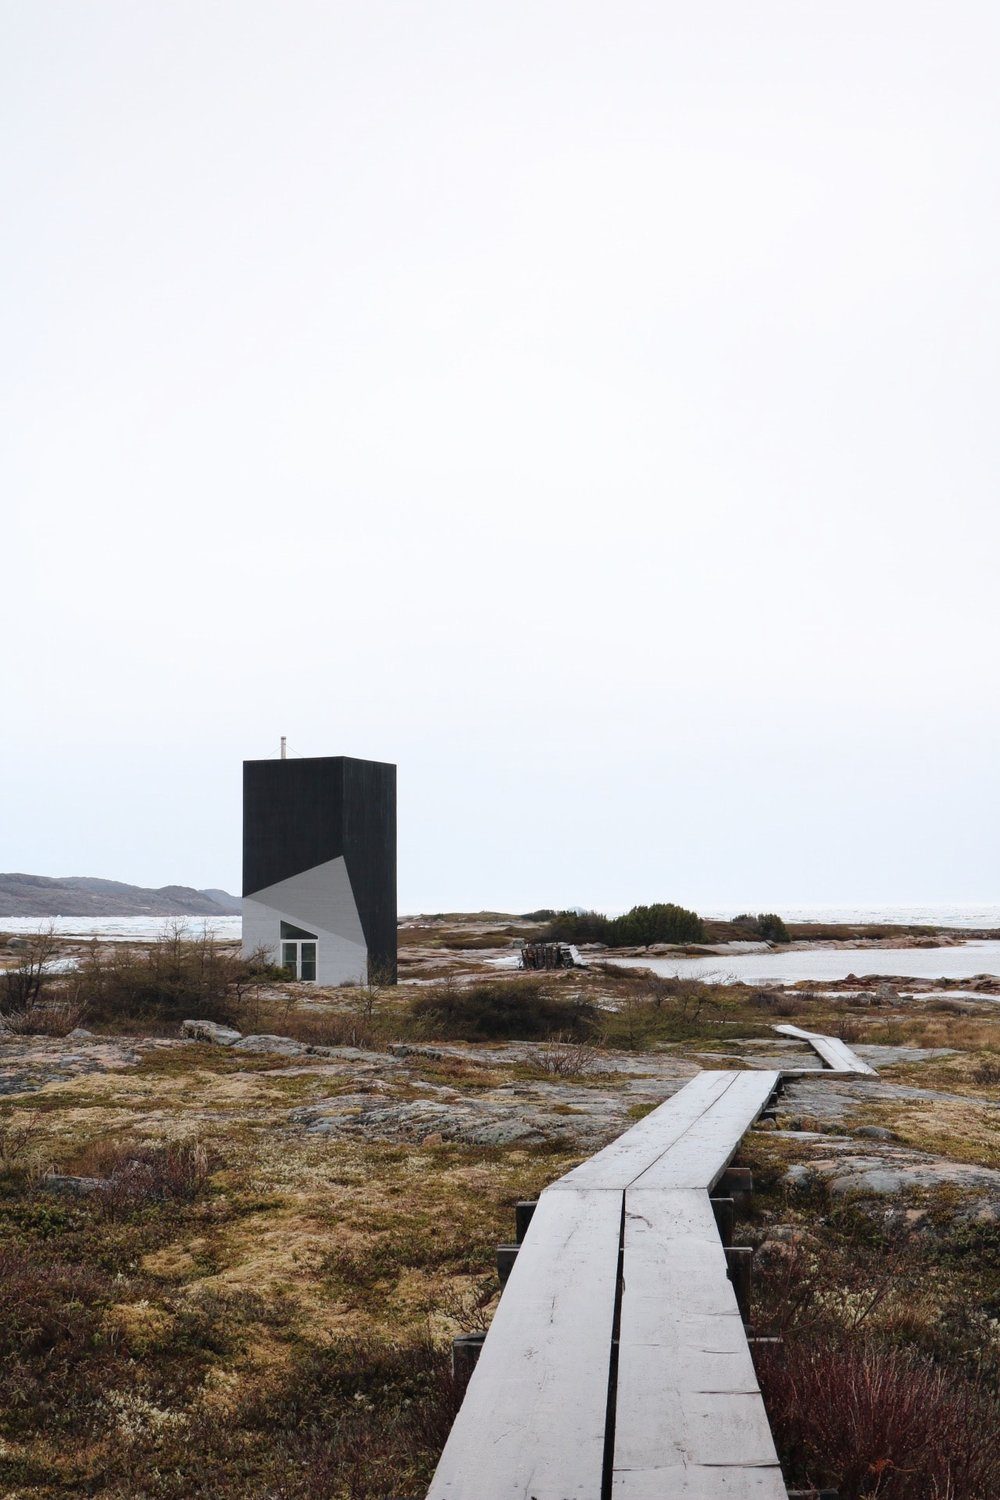 Tower Studio, Shoal Bay, Fogo Island, Newfoundland